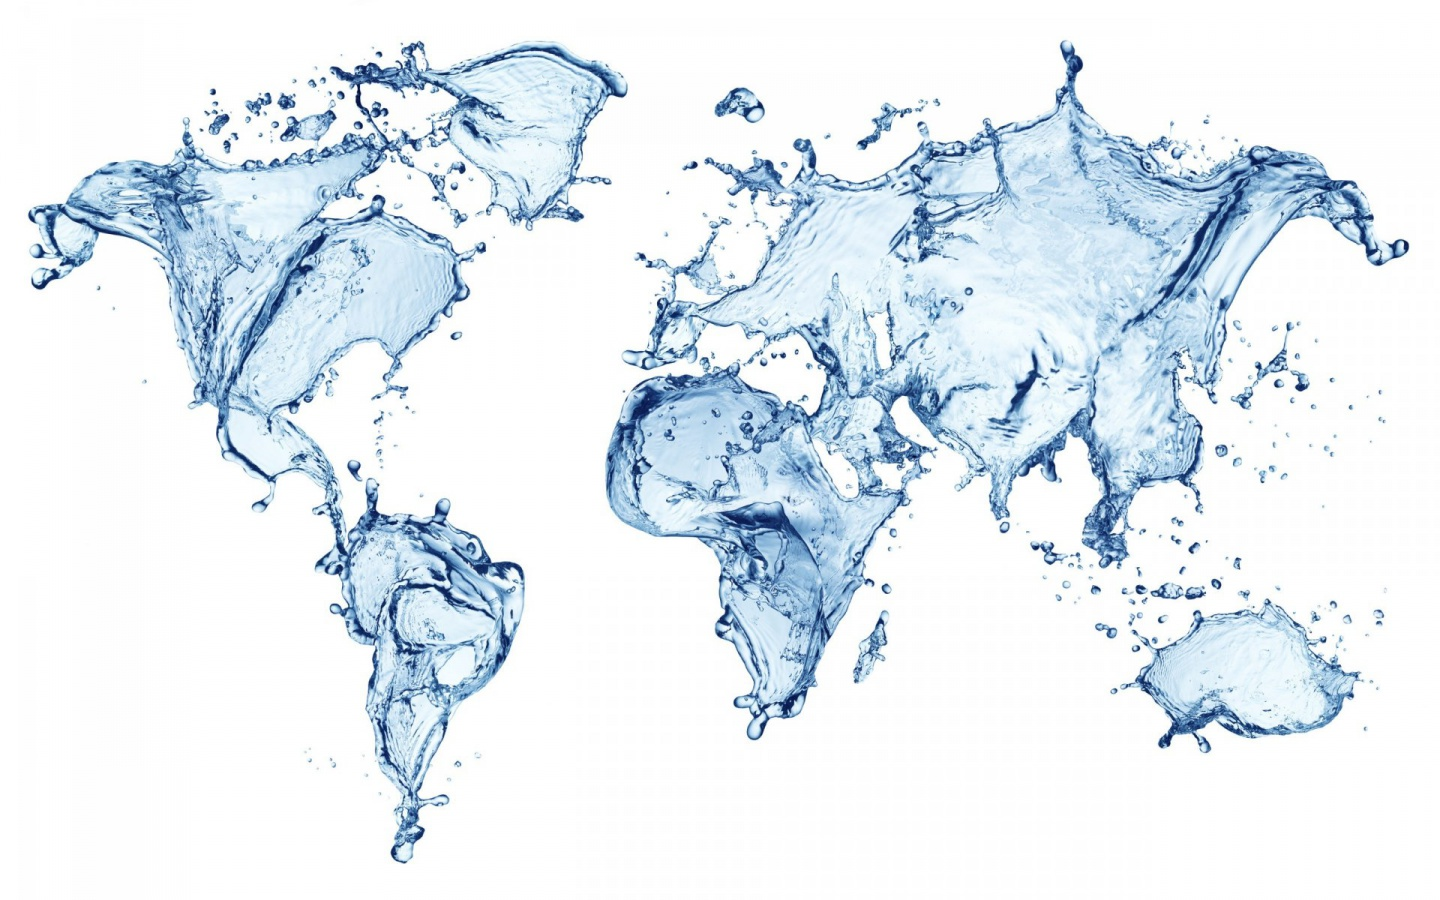 1440x900 world maps water abstract